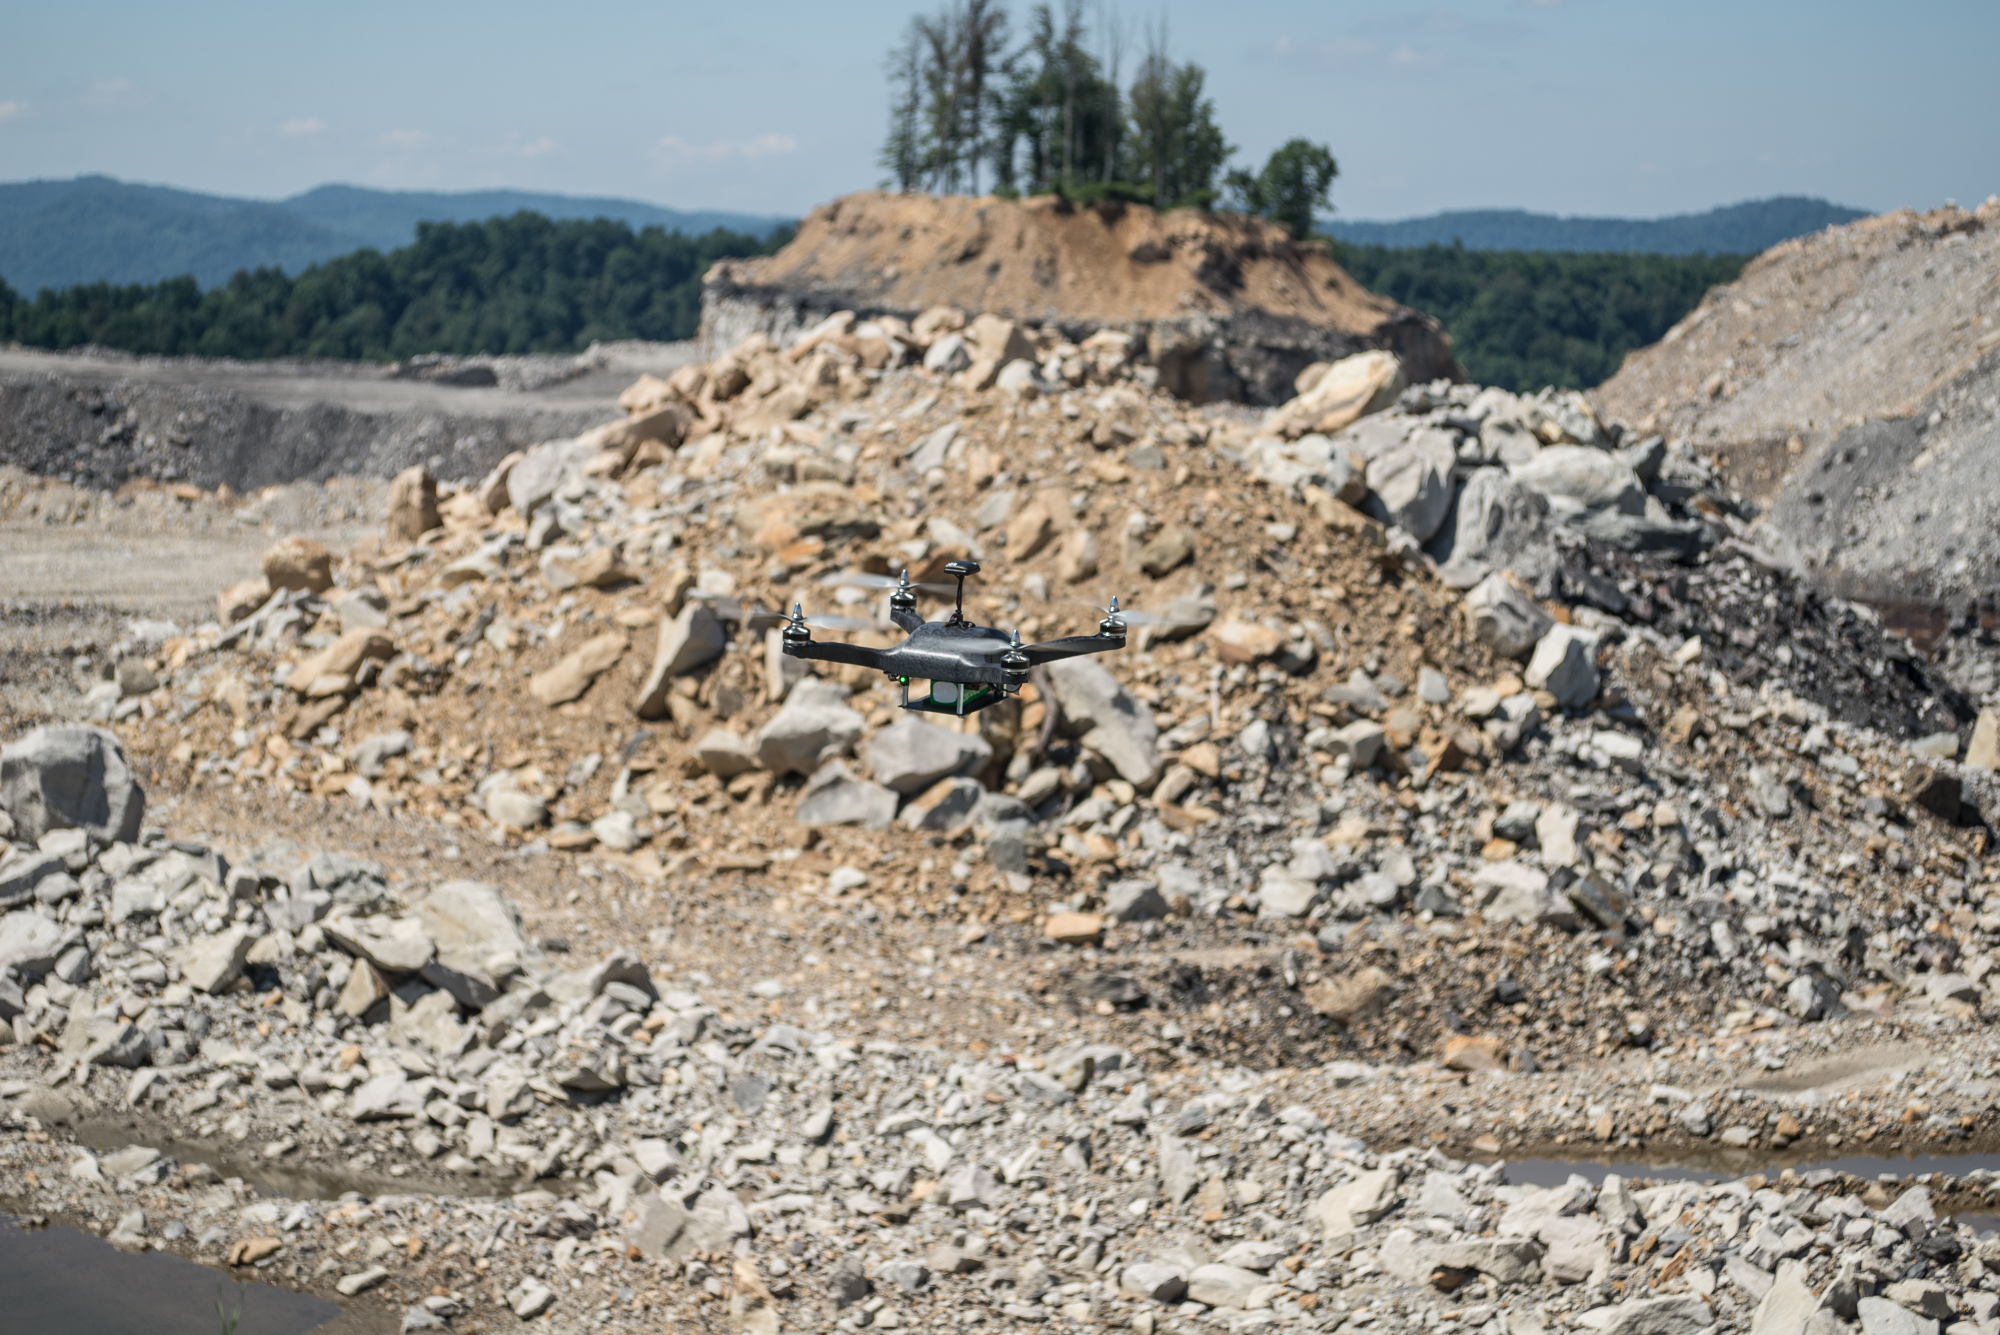 Drones Brought in for Surface Mining Project in Pennsylvania